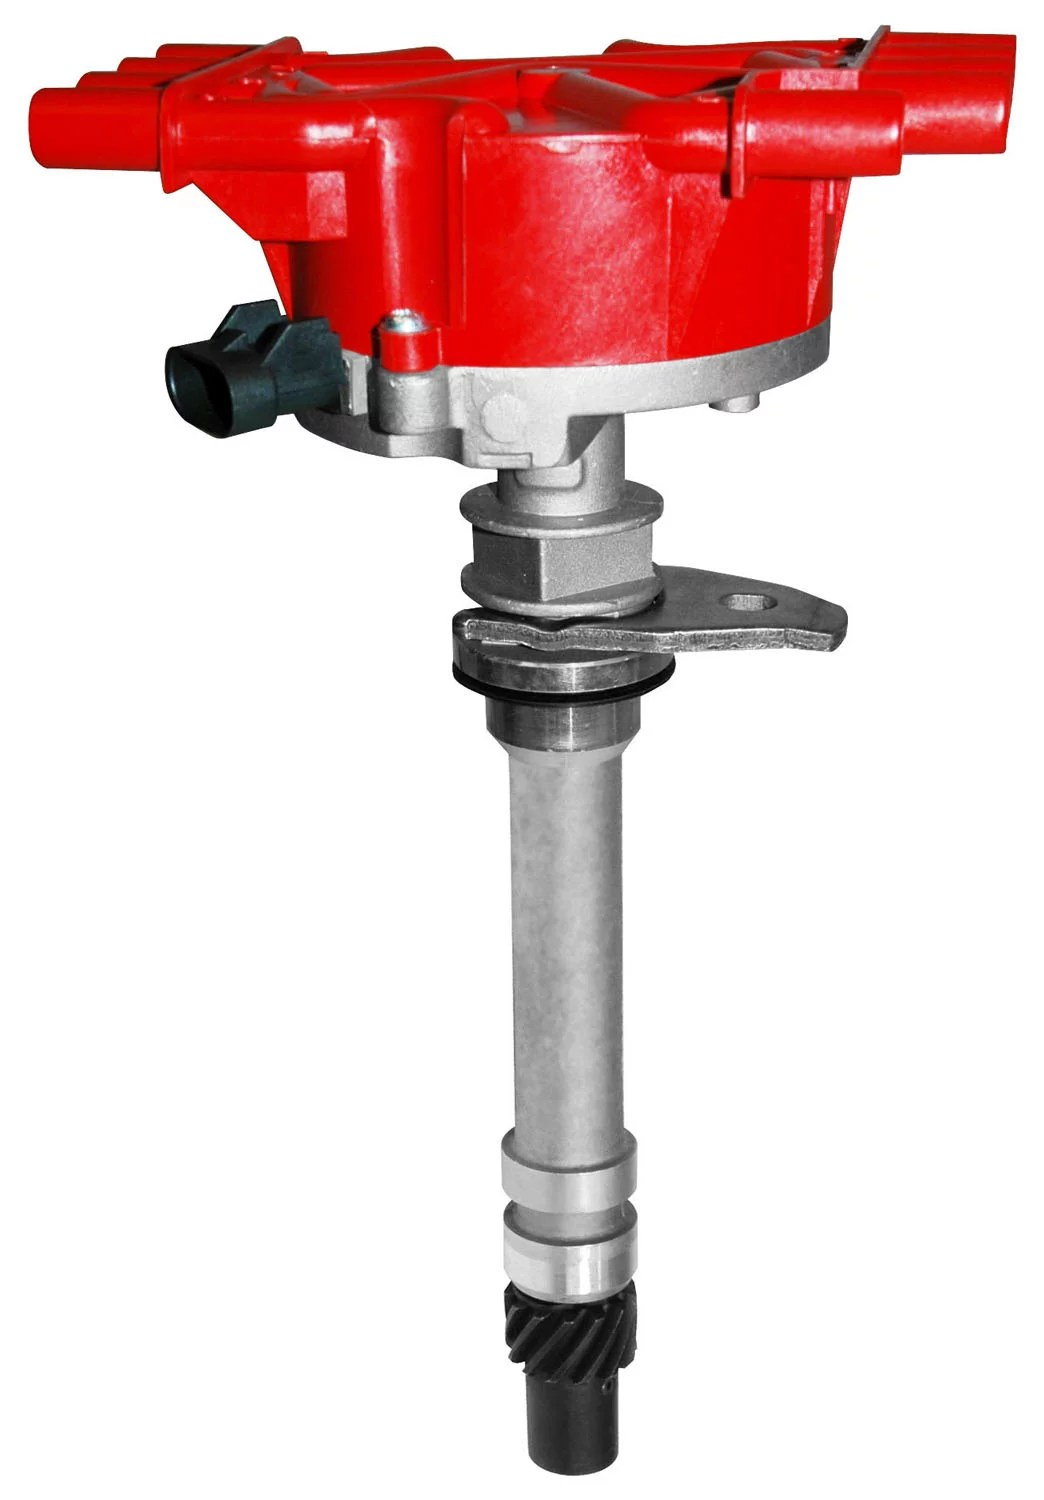 medium resolution of msd ignition 5592 distributor street fire for use with gm vortec engines without ignition control module magnetic trigger locked out timing